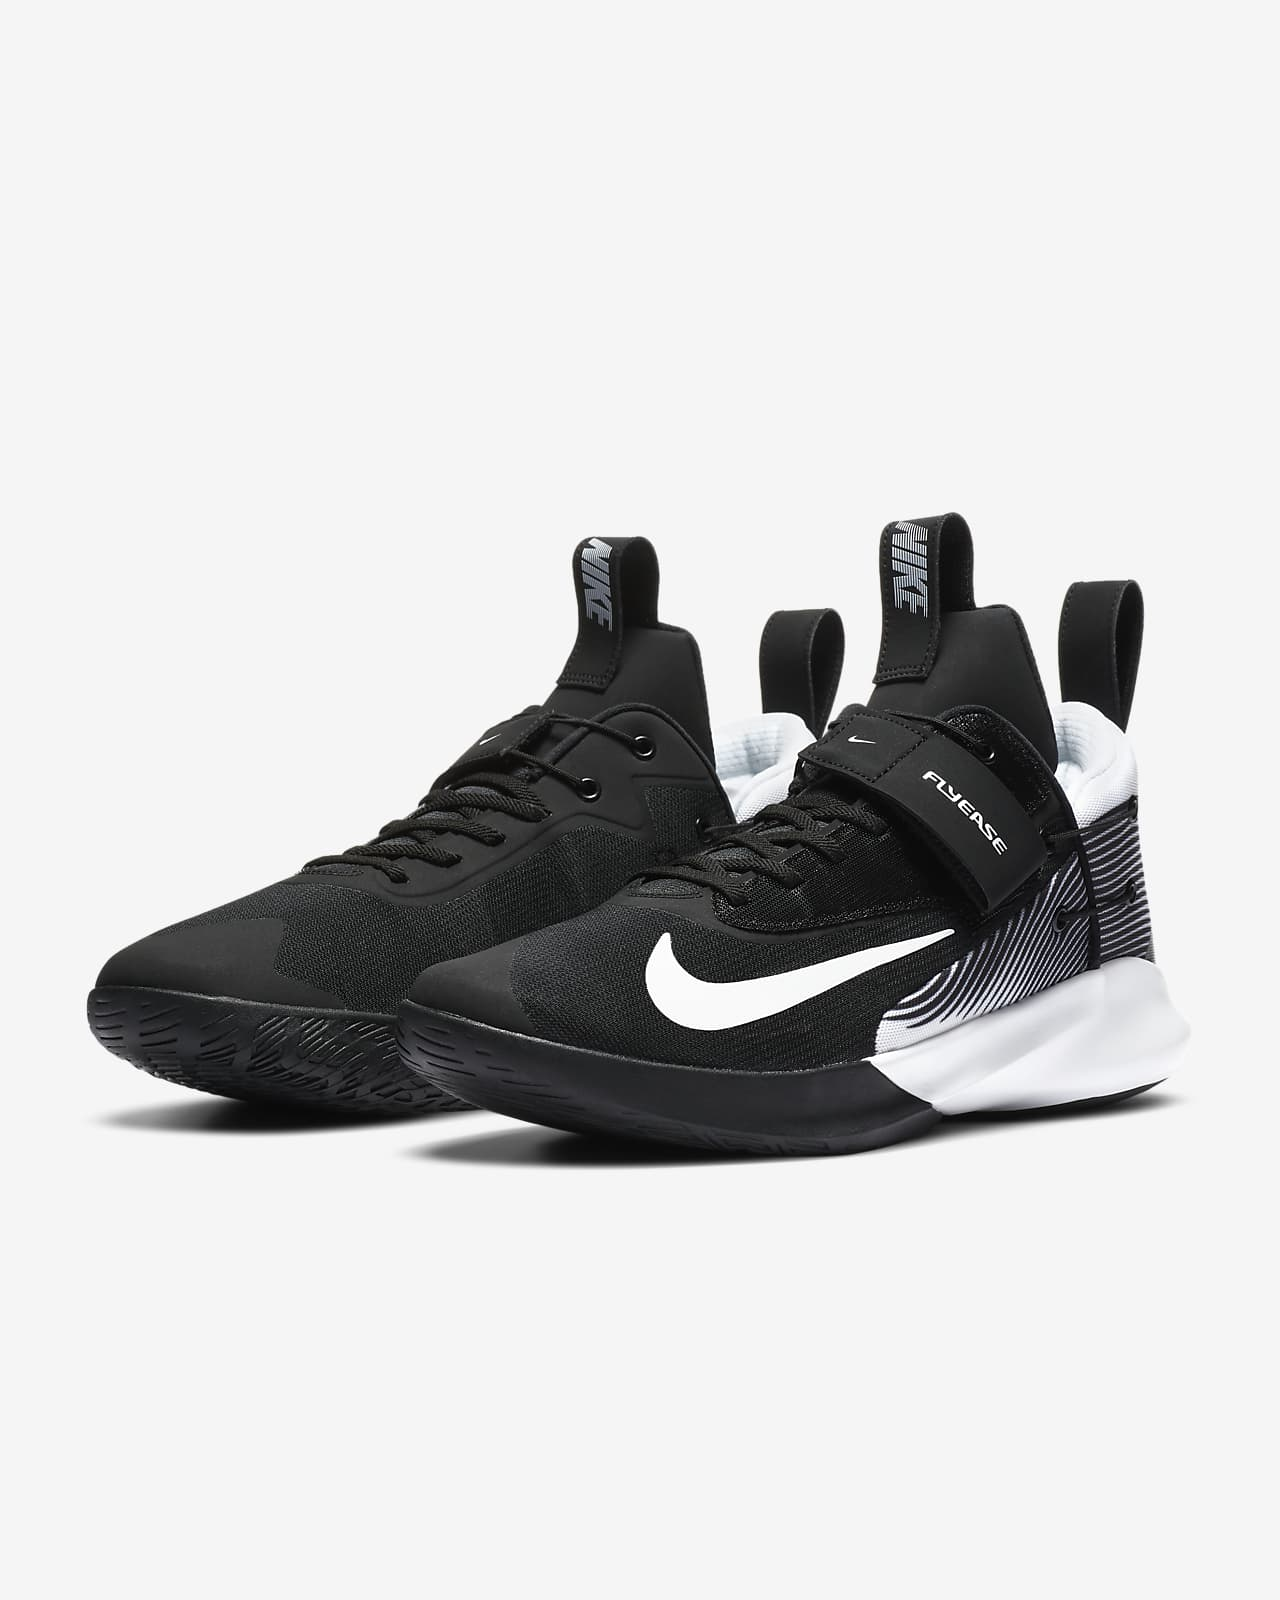 Nike Precision 4 FlyEase Basketball Shoe (Extra Wide)